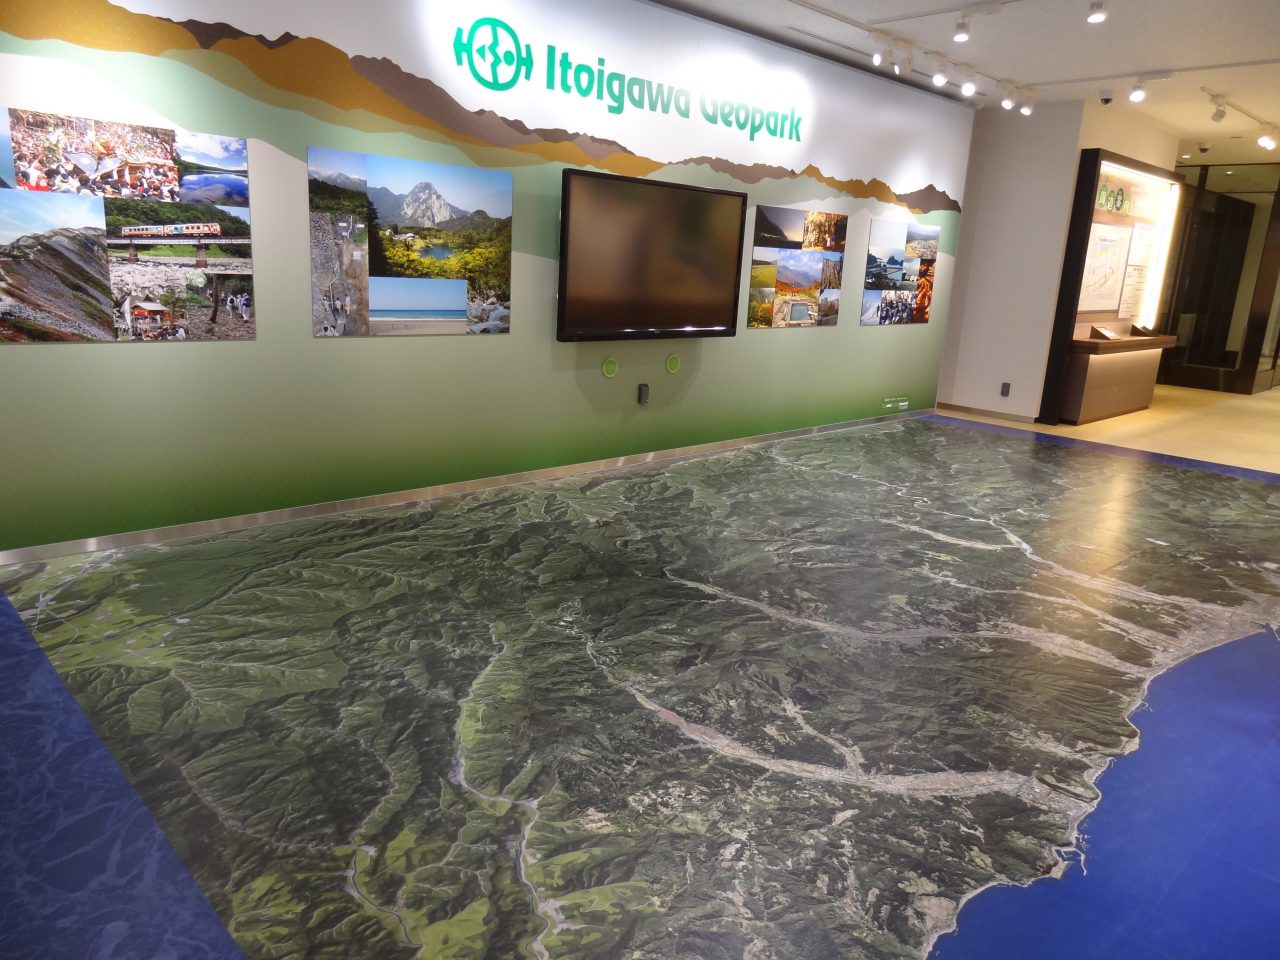 Discover Itoigawa at the Tourist Information Center